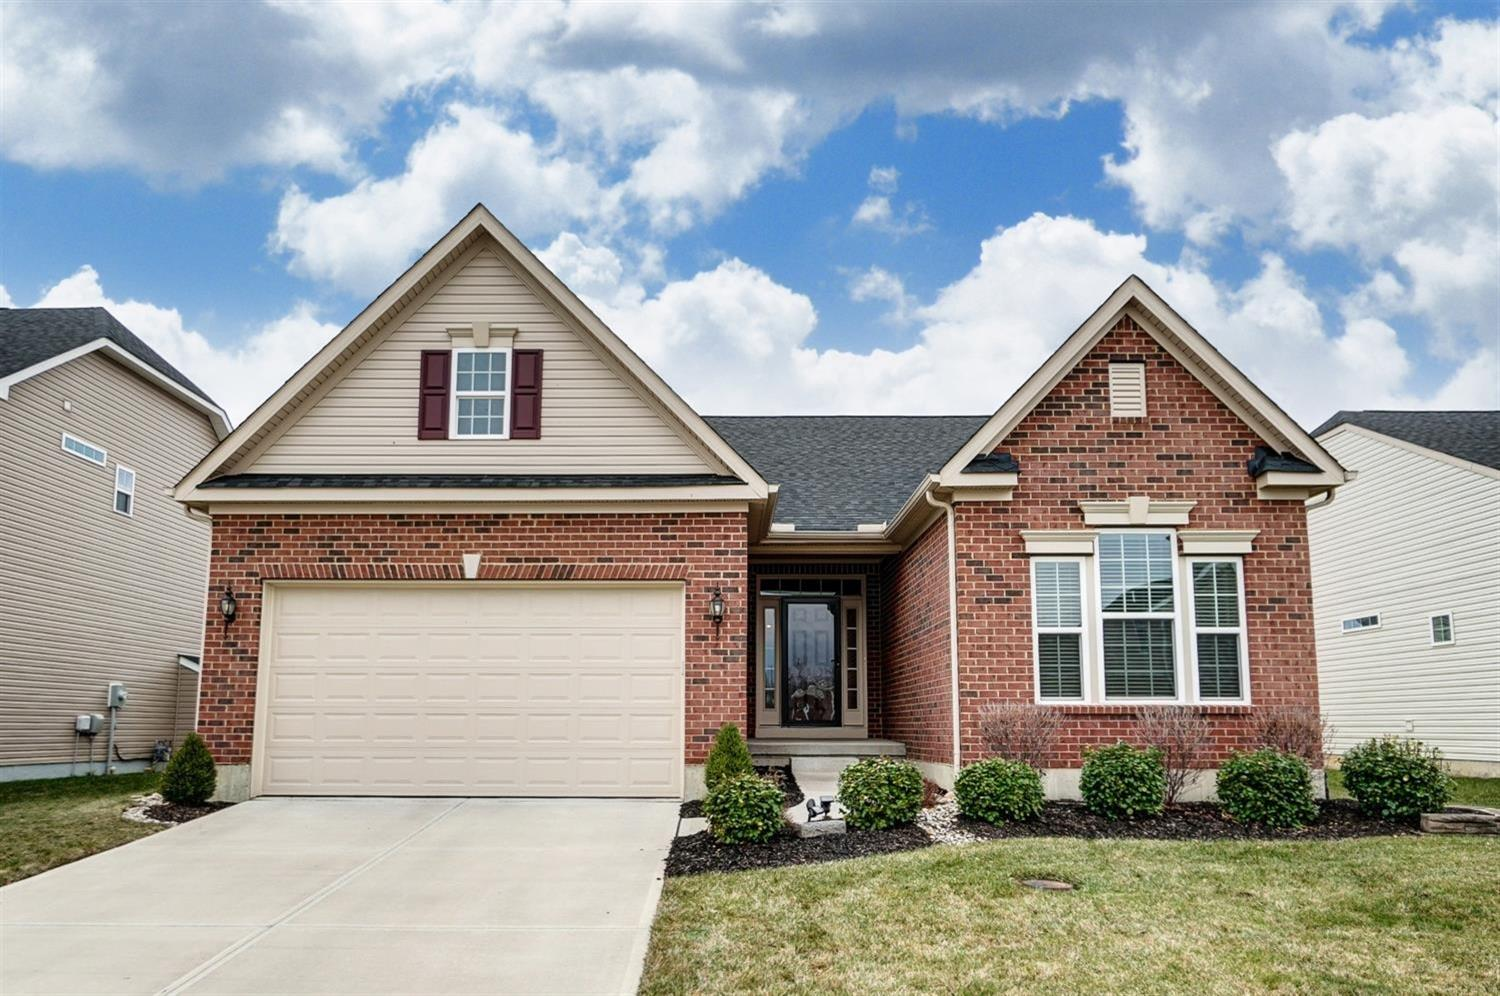 Property for sale at 6595 Holly Lane, Fairfield Twp,  Ohio 45011